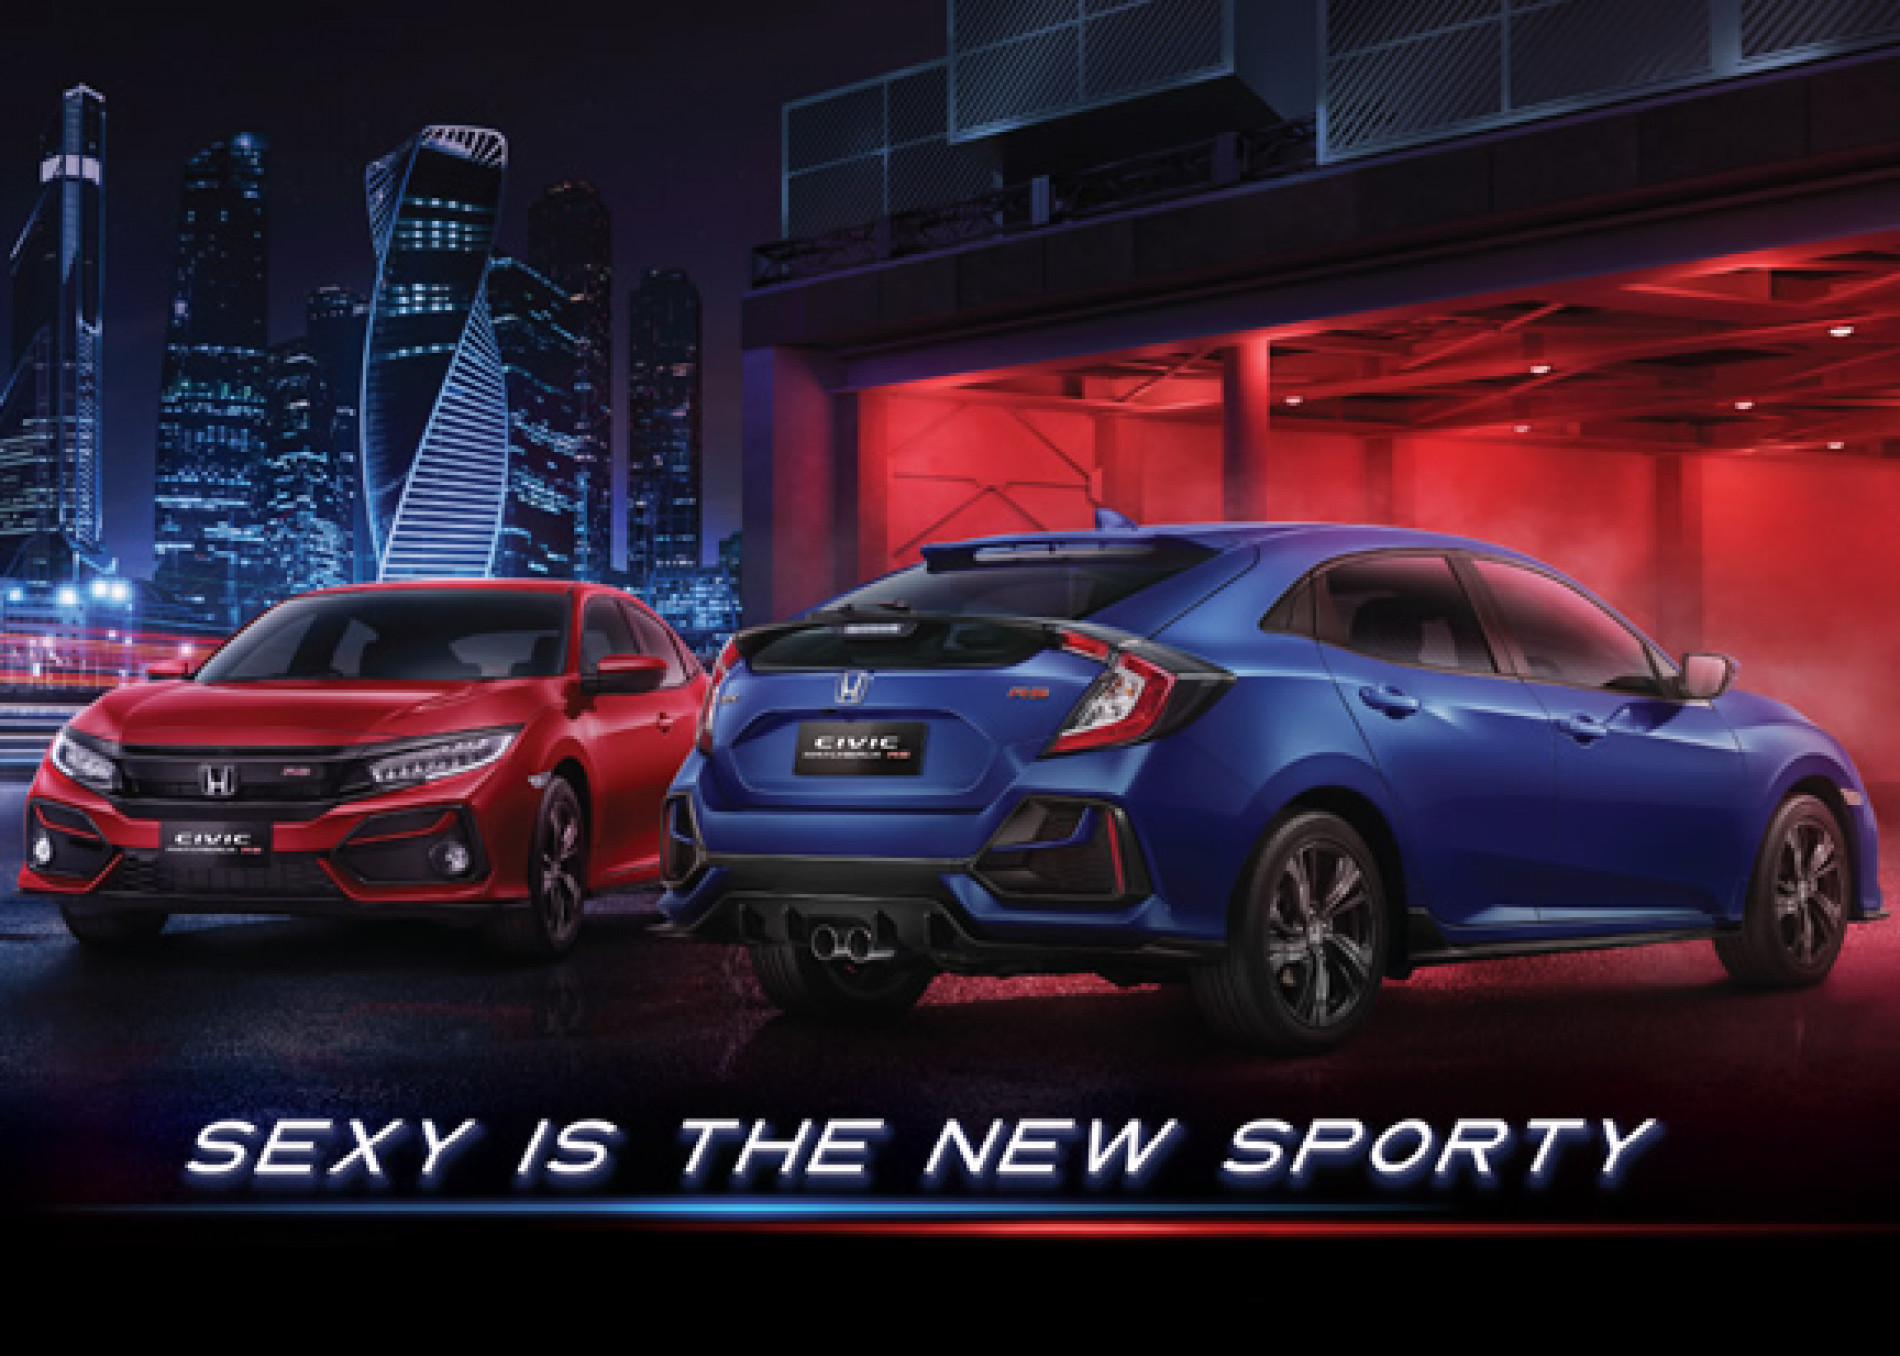 sexy-is-the-new-sporty